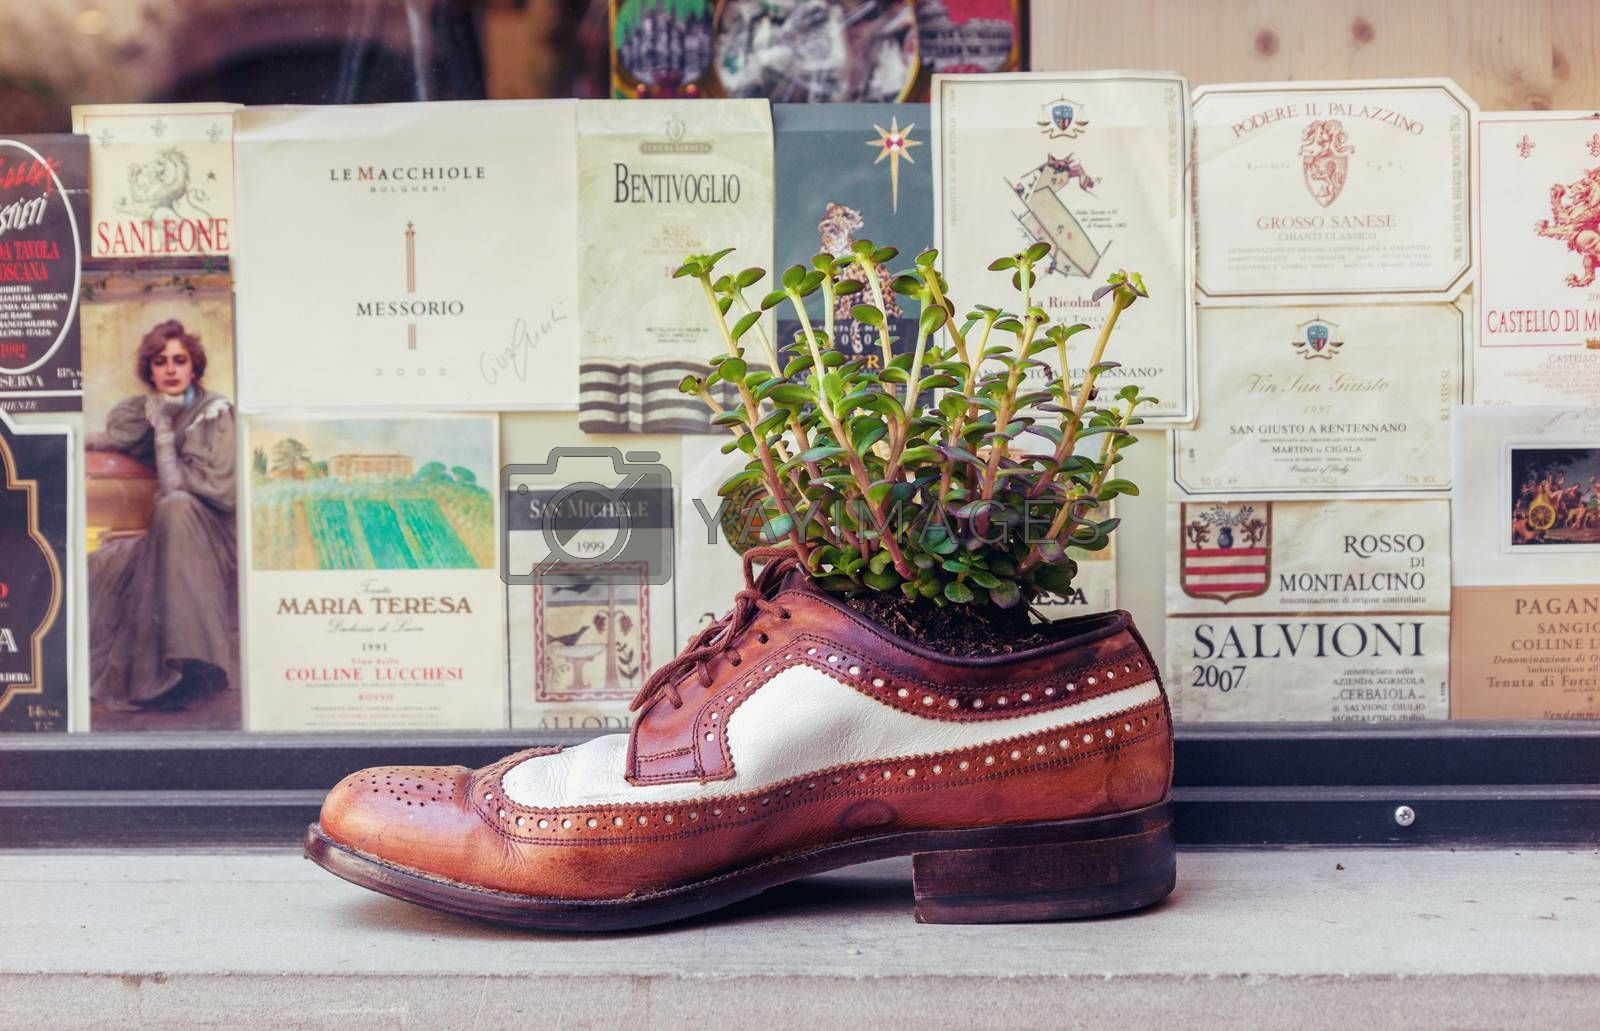 FLORENCE, ITALY - JULY 12, 2016: Old leather shoe as decorative flower pot in a background of vintage wine labels in Florence, Italy